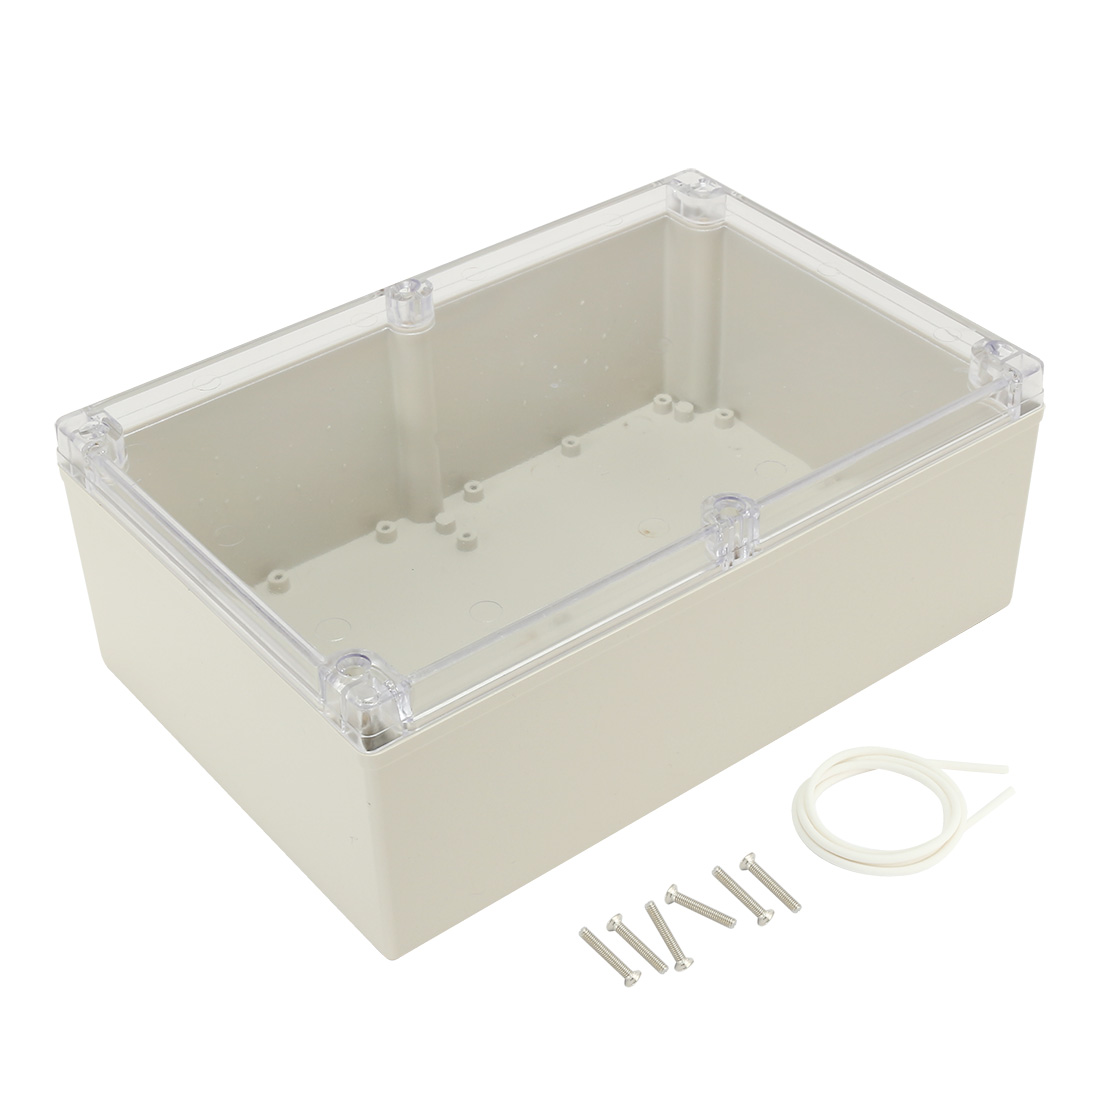 "9.4""x6.3""x3.54""(240mmx160mmx90mm) ABS Junction Box Electric Project Enclosure Clear"